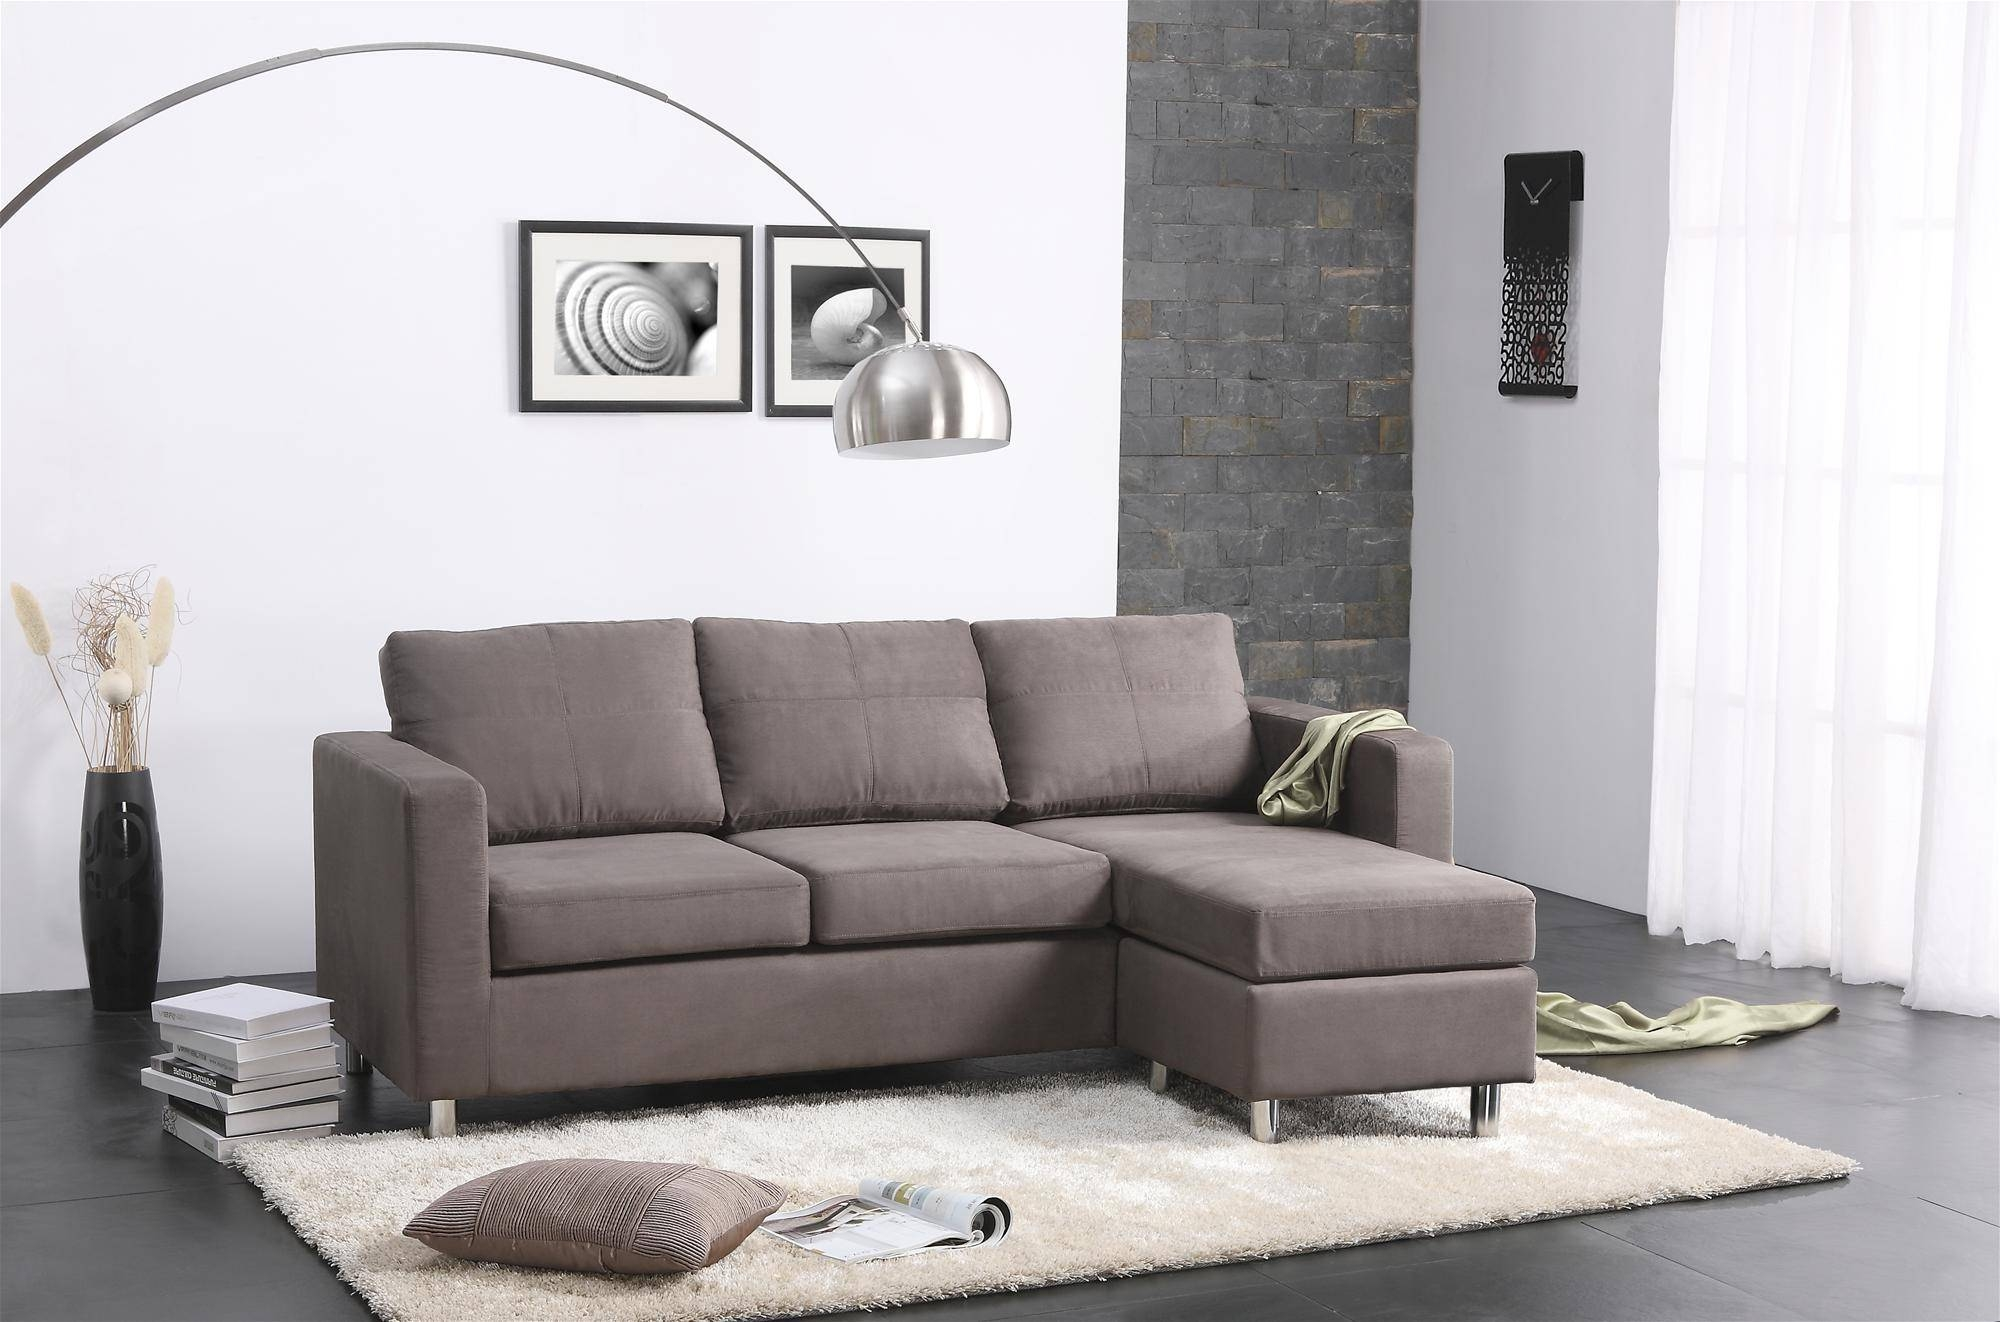 Jebluk/wp-Content/uploads/300-Small-Spaces-Sec regarding Compact Sectional Sofas (Image 5 of 30)